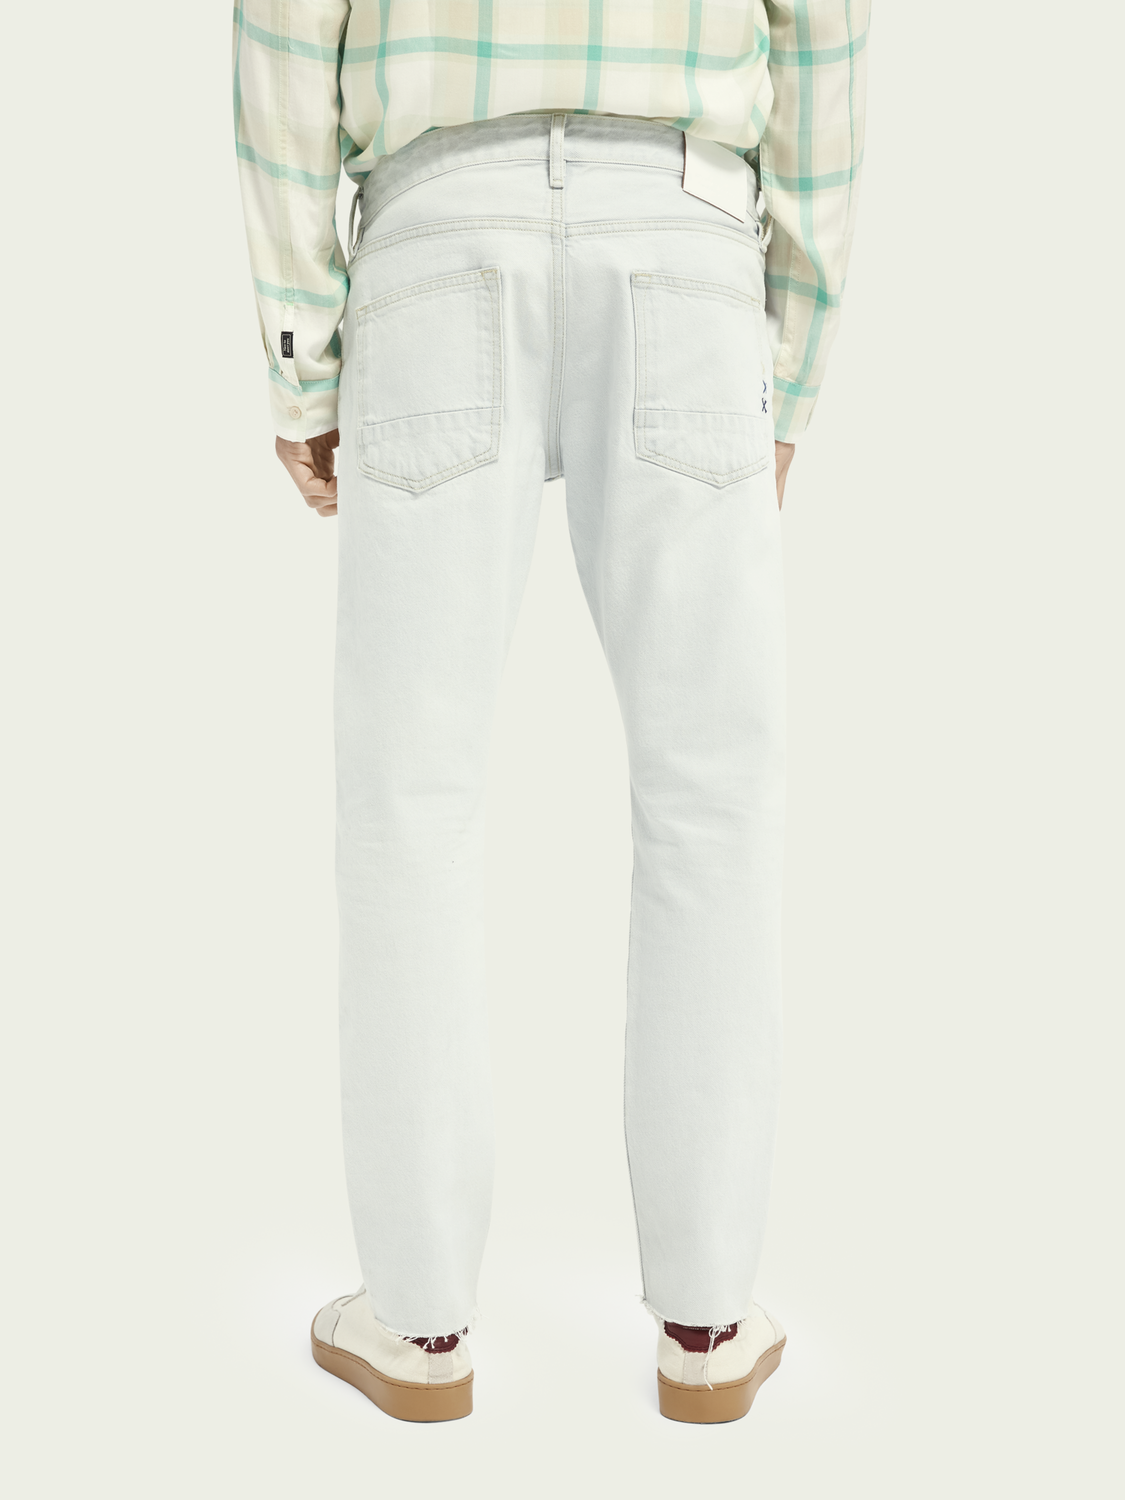 Men Ralston cropped jeans ─ Spring Signal